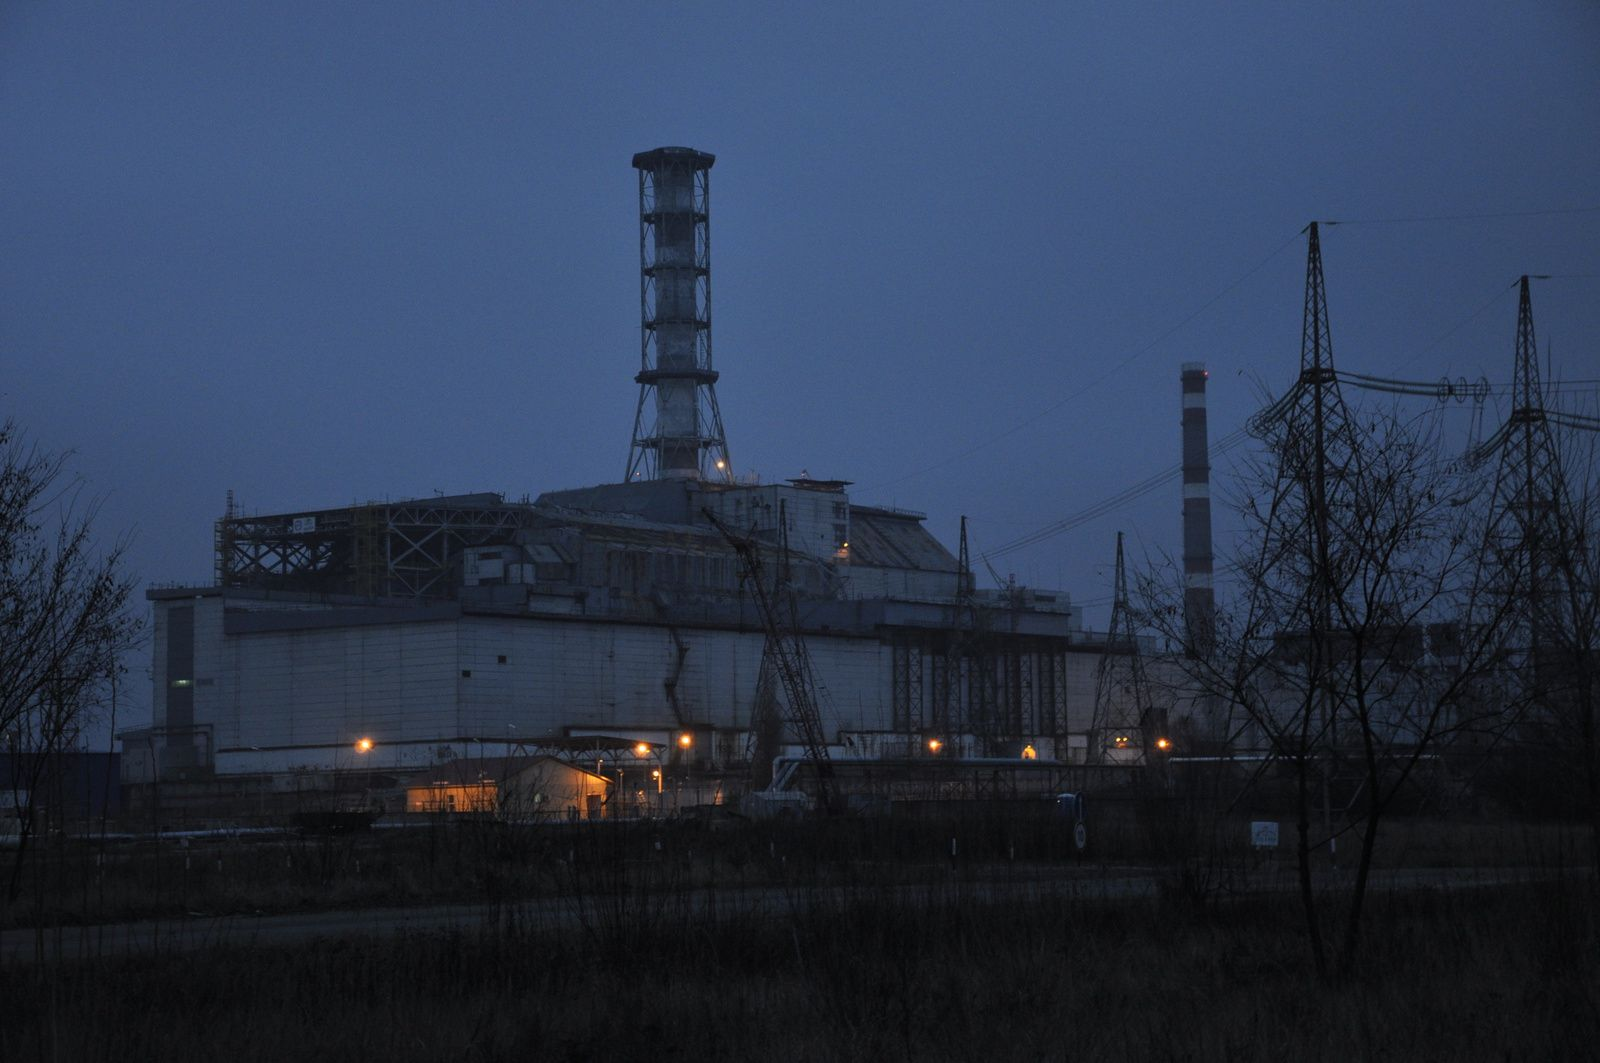 Chernobyl Nuclear Power Plant's reactor 4